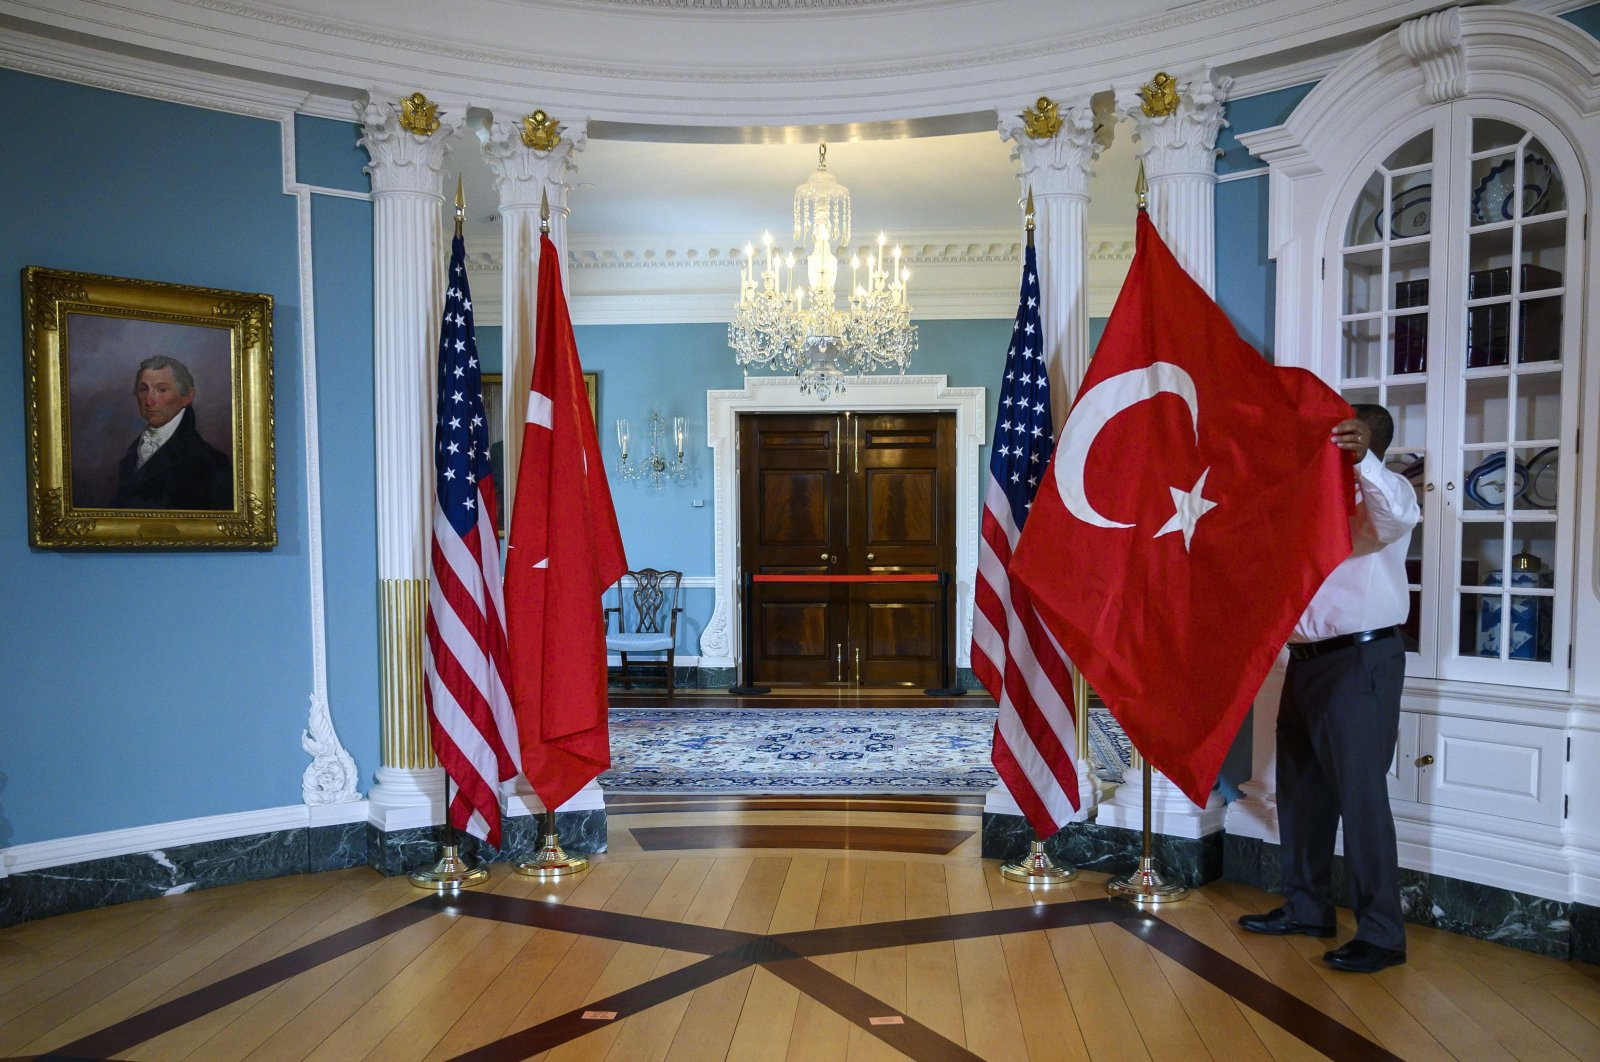 A State Department staffer adjusts the flags of Turkey and the U.S. before a bilateral meeting, Washington D.C., U.S., April 3, 2019. (Photo by Getty Images)